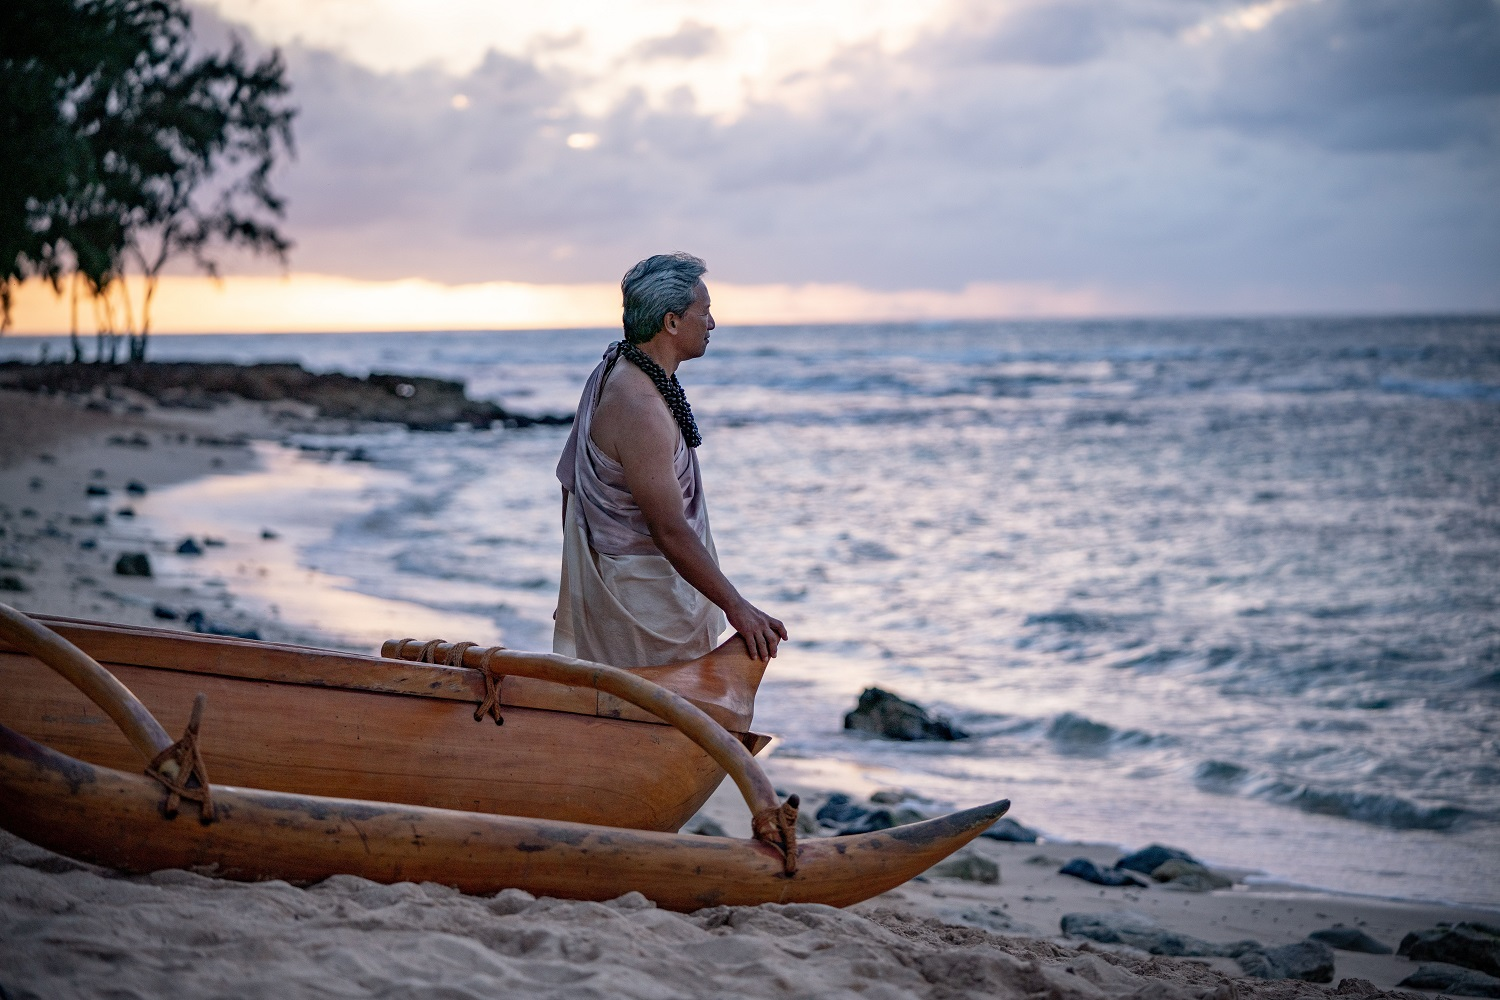 image showcases the connection Hawaiians feel between their culture and the sea.